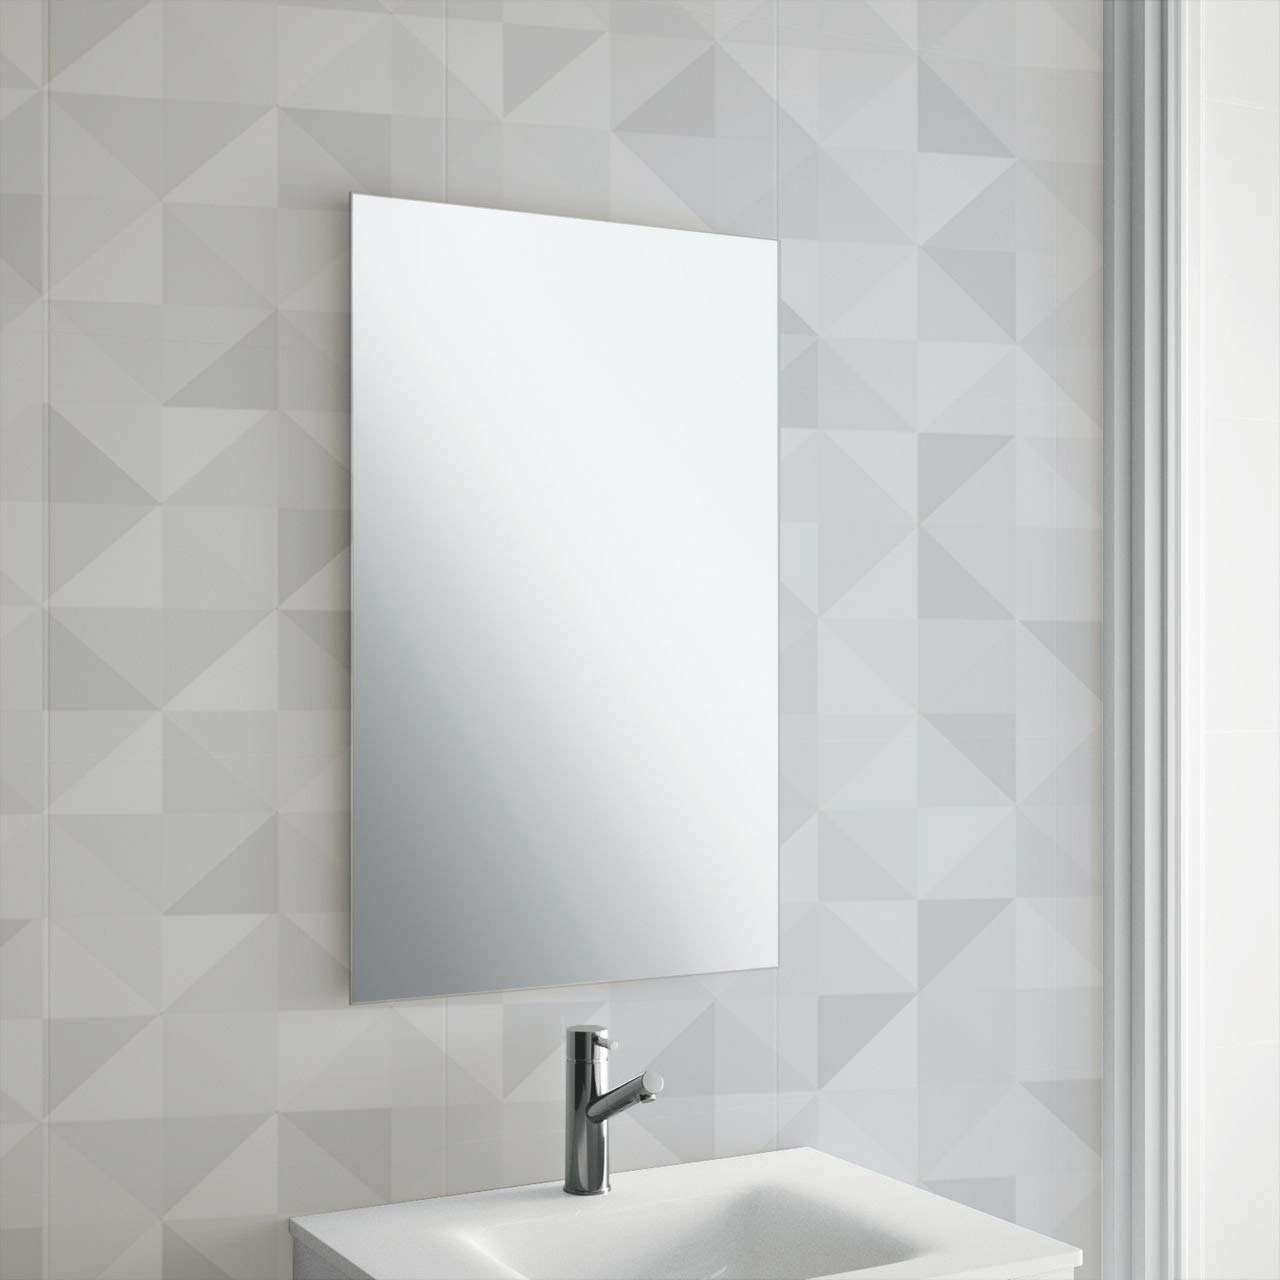 450x300mm Frameless Rectangle Mirror | Includes Chrome Cap Hanging Fixings | Pre-Drilled Holes | Wall Mounted Unframed Rectangle Bathroom Mirror | M&W Xbite